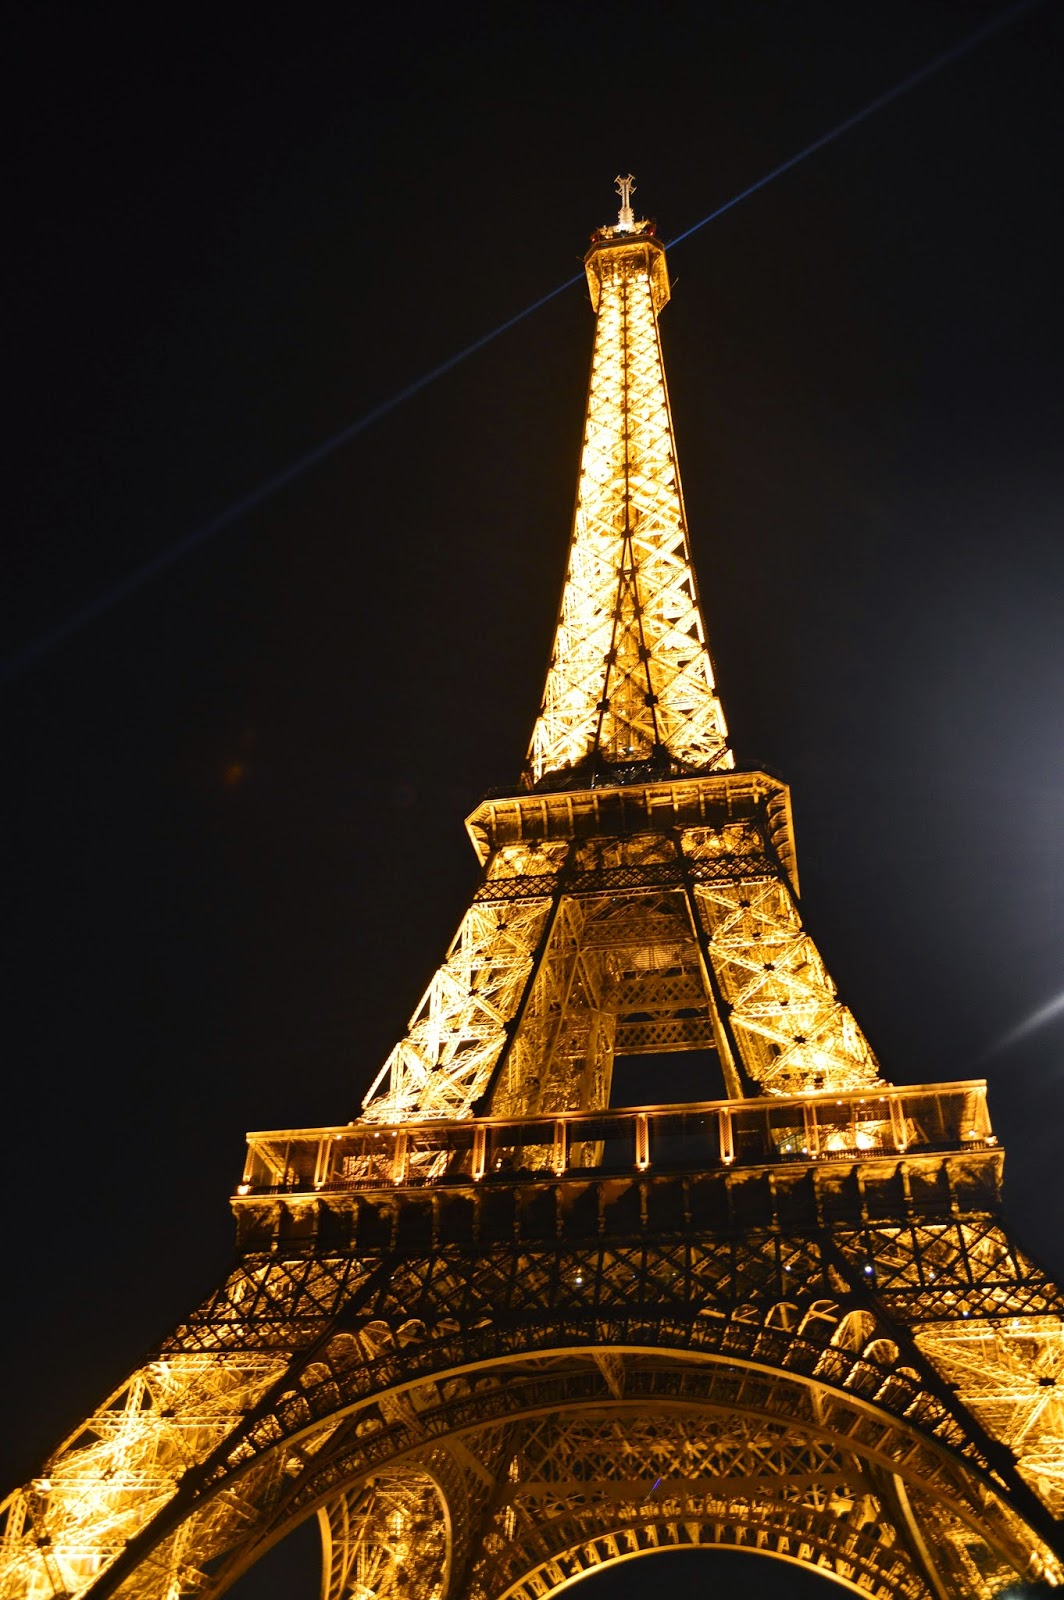 Eiffel Tower at night. Paris, France